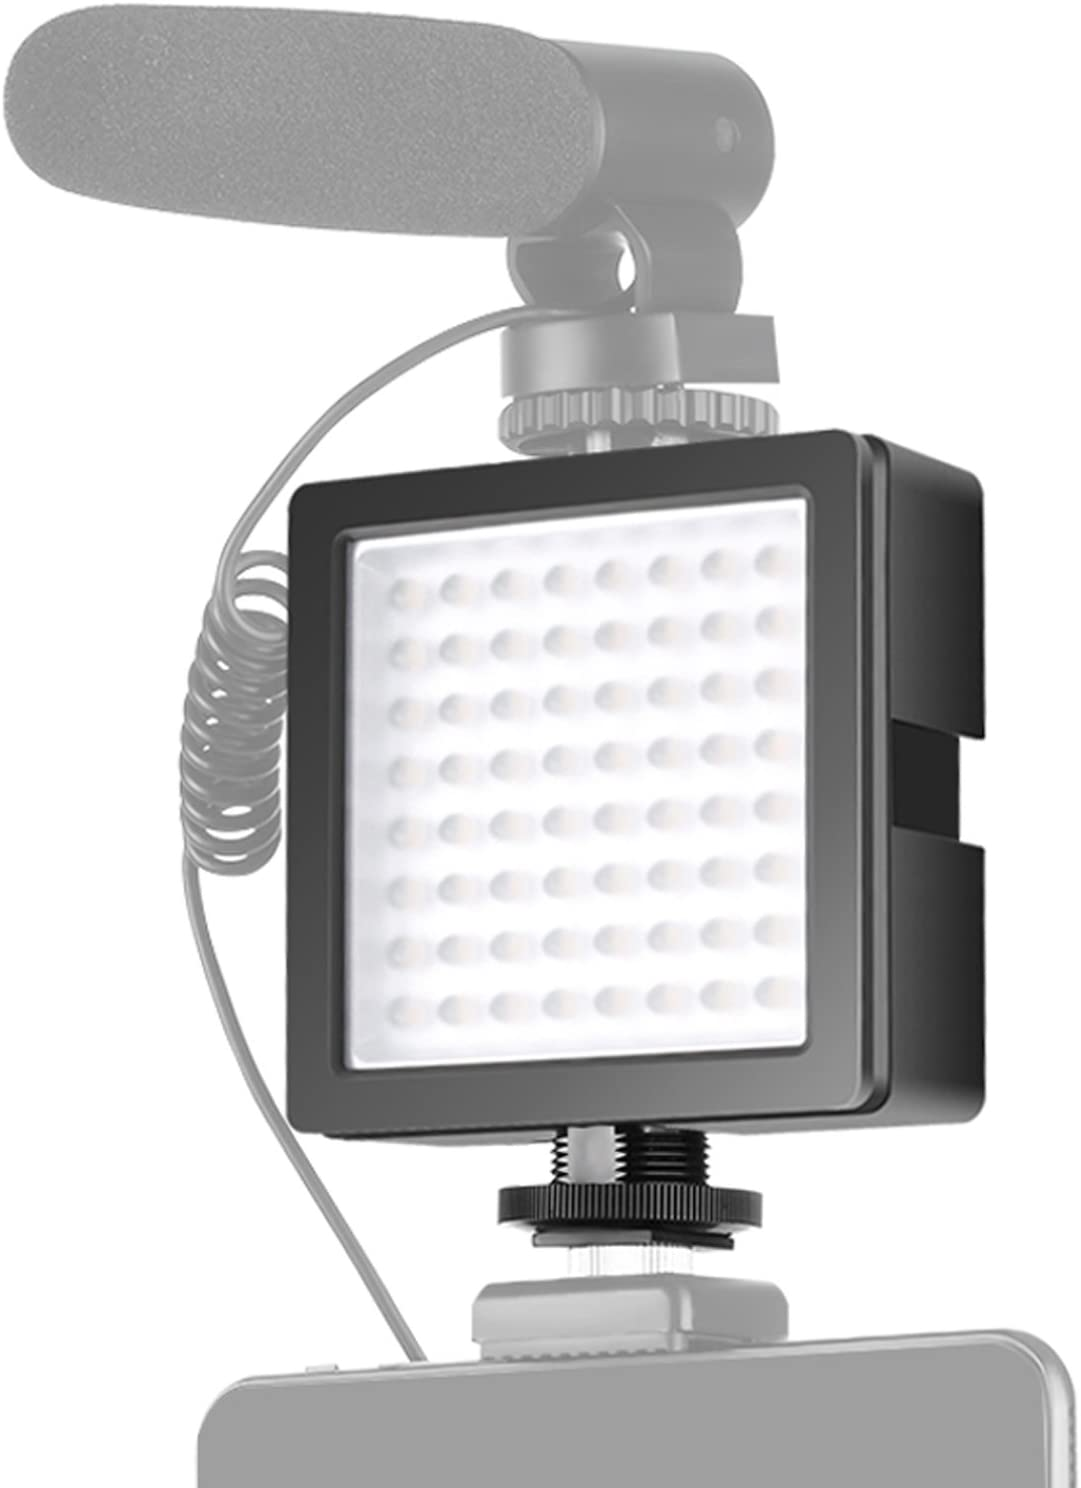 Olympus DSLR Neewer 3-Way Expandable 64 LED Light Panel On-Camera Video Light with 3 Expansion Joint Interface 5600K for Studio//Outdoors Lighting for Canon Nikon Battery NOT Included Sony PL100